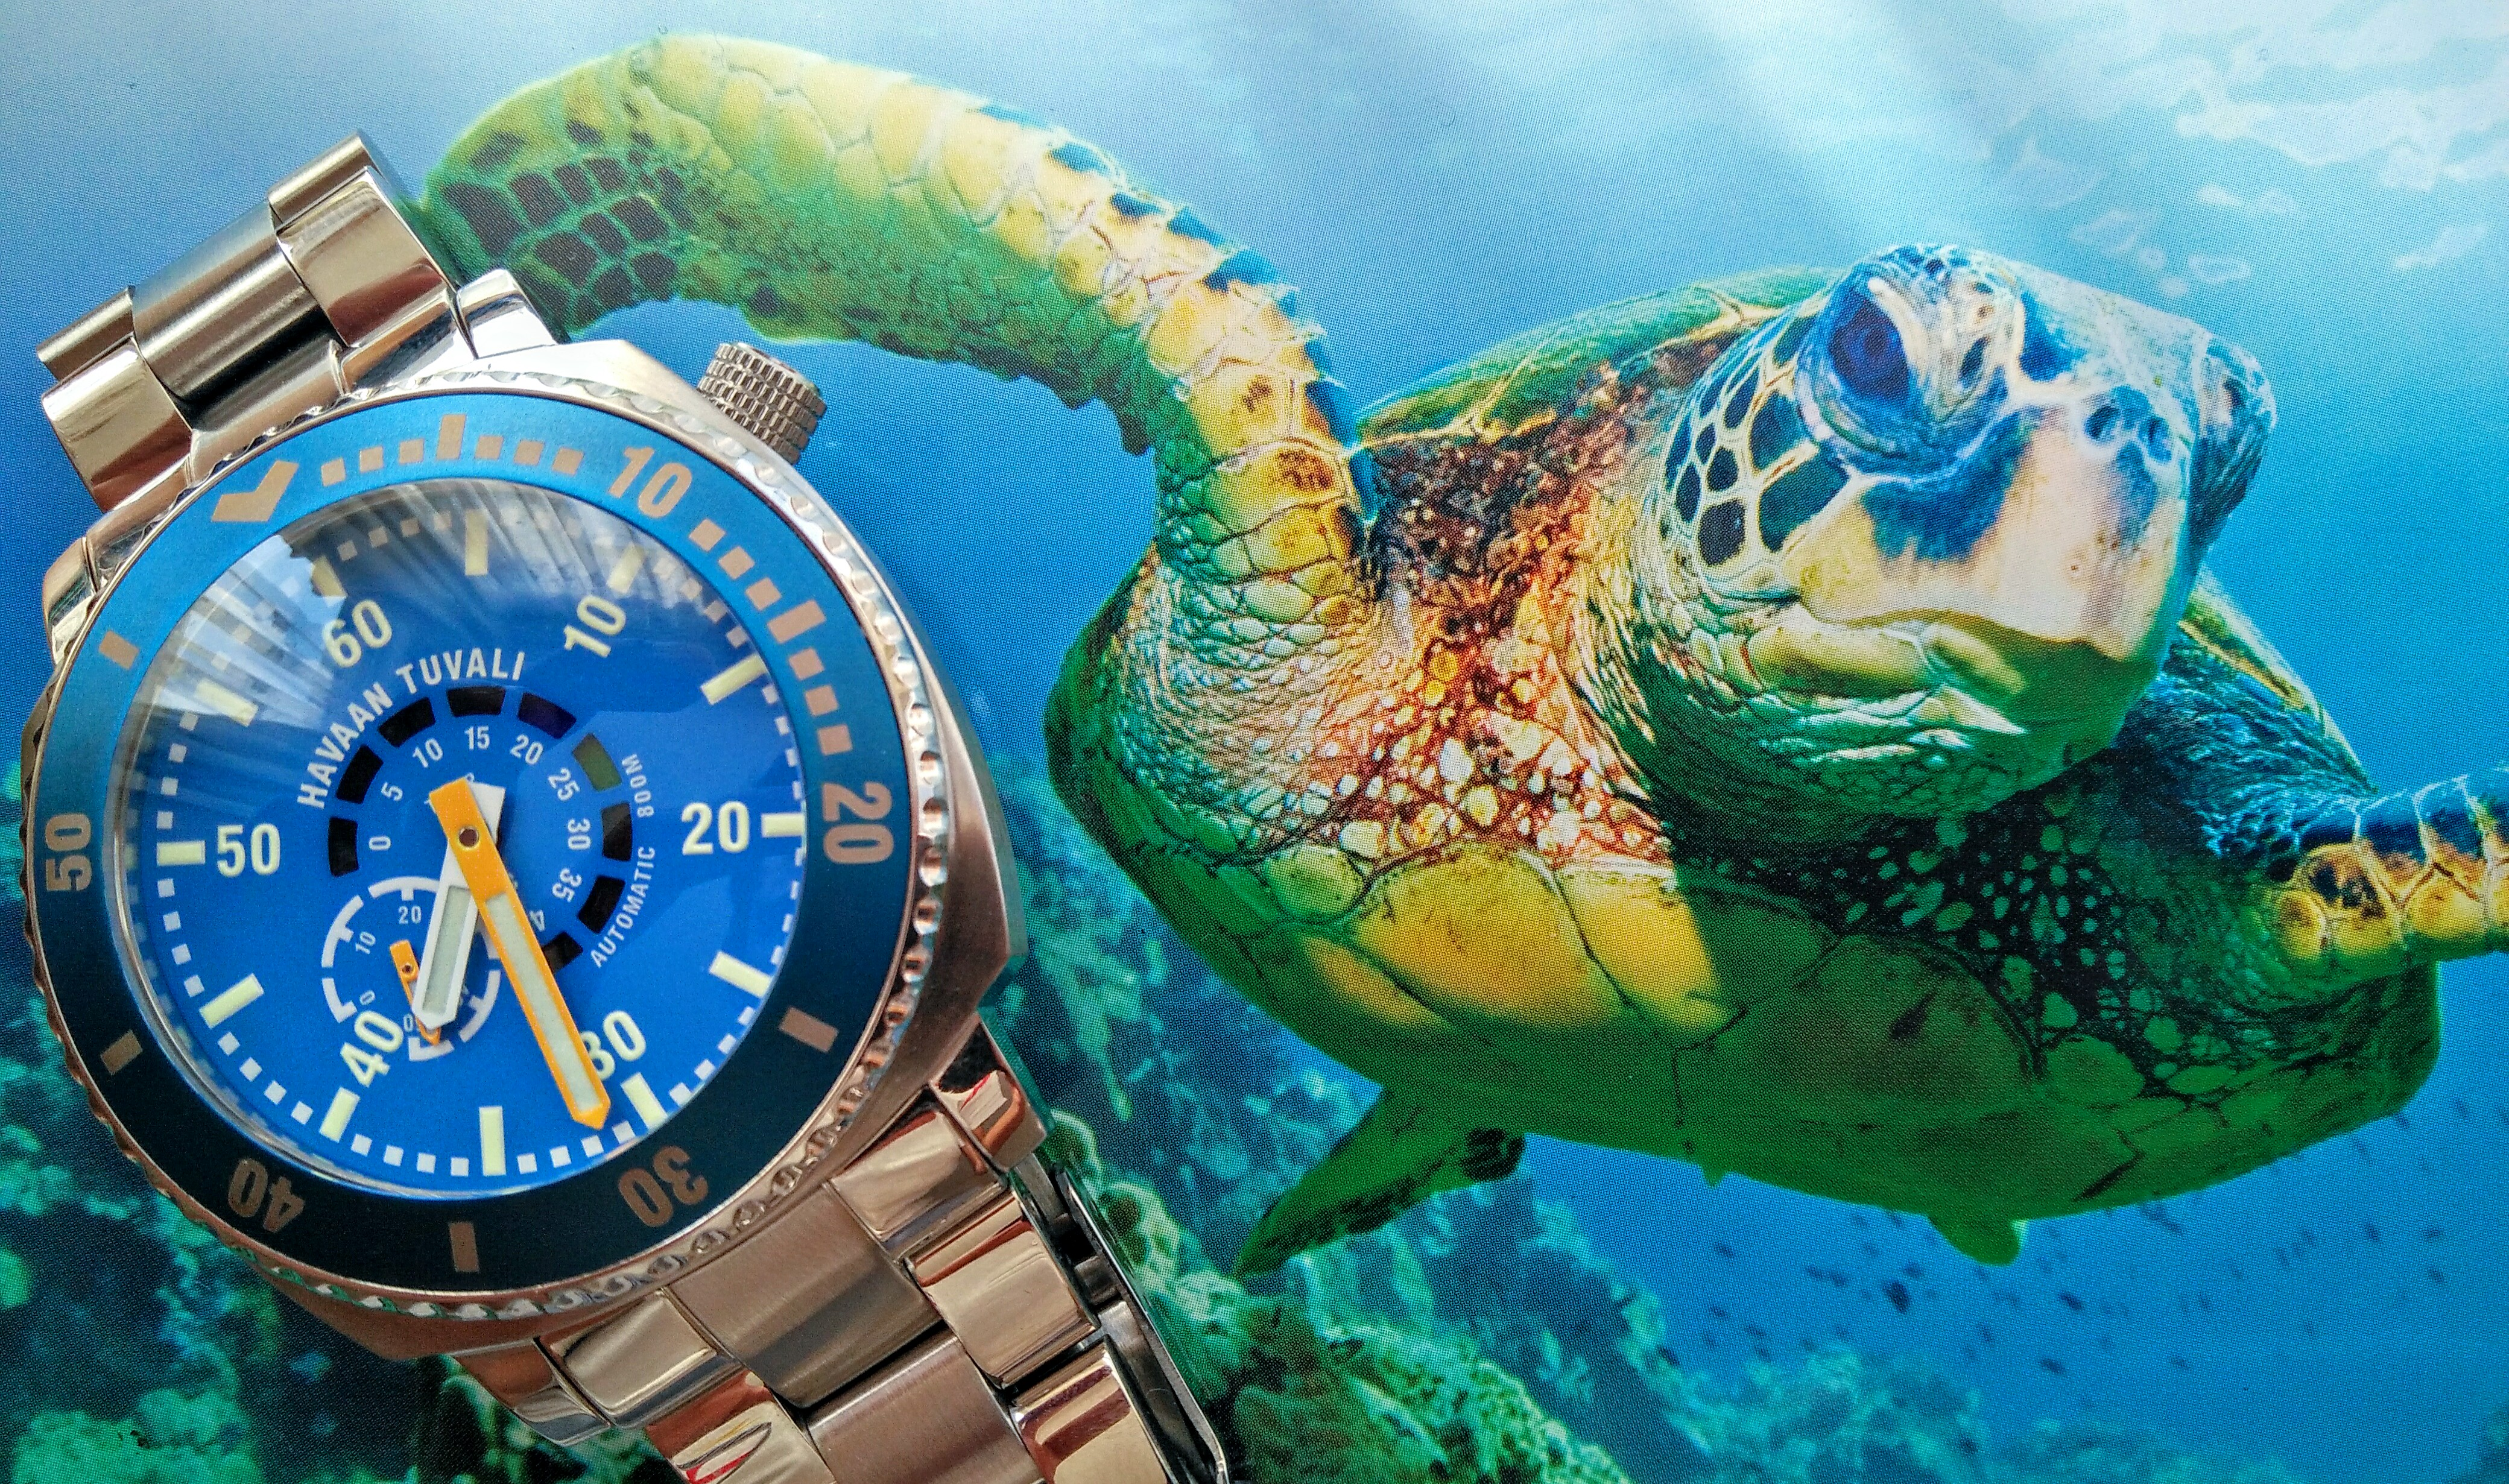 Havaan Tuvali Bluefin Diver Watch